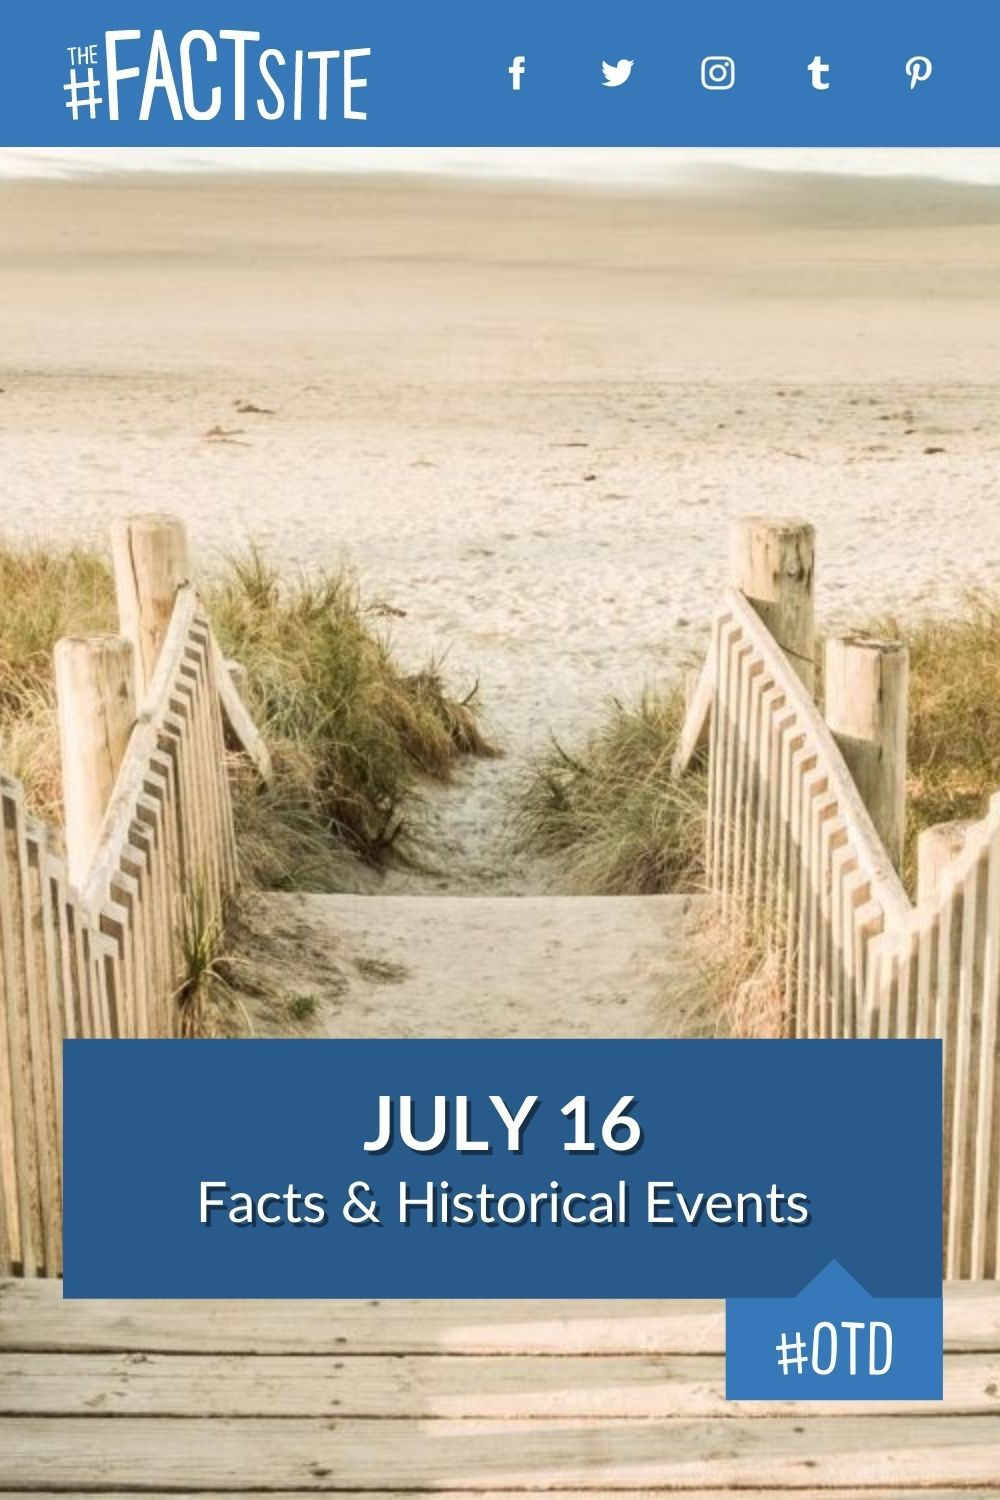 Facts & Historic Events That Happened on July 16